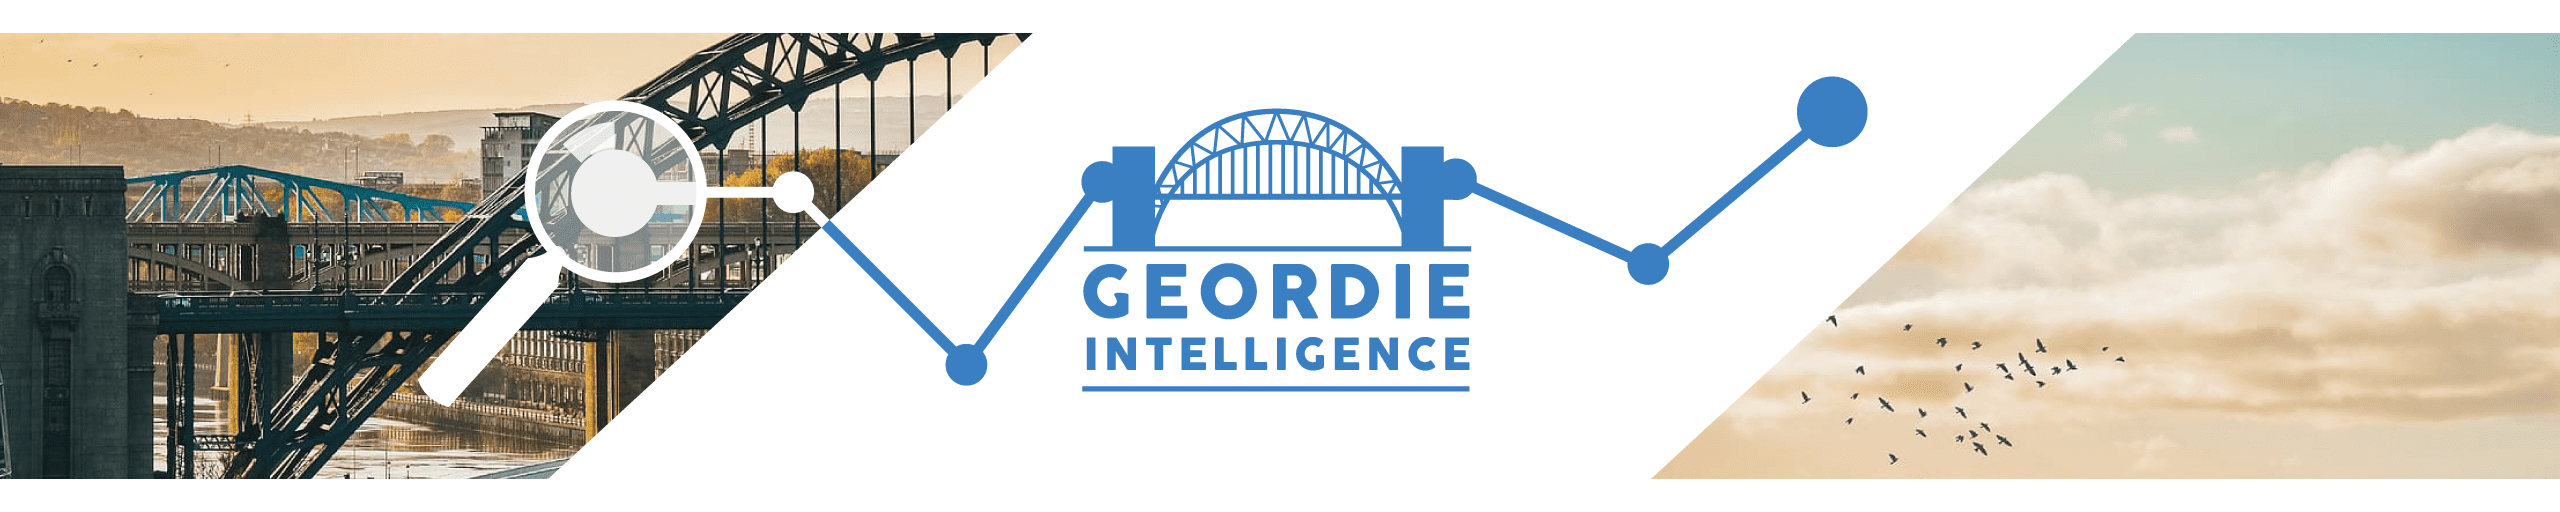 Geordie Intelligence